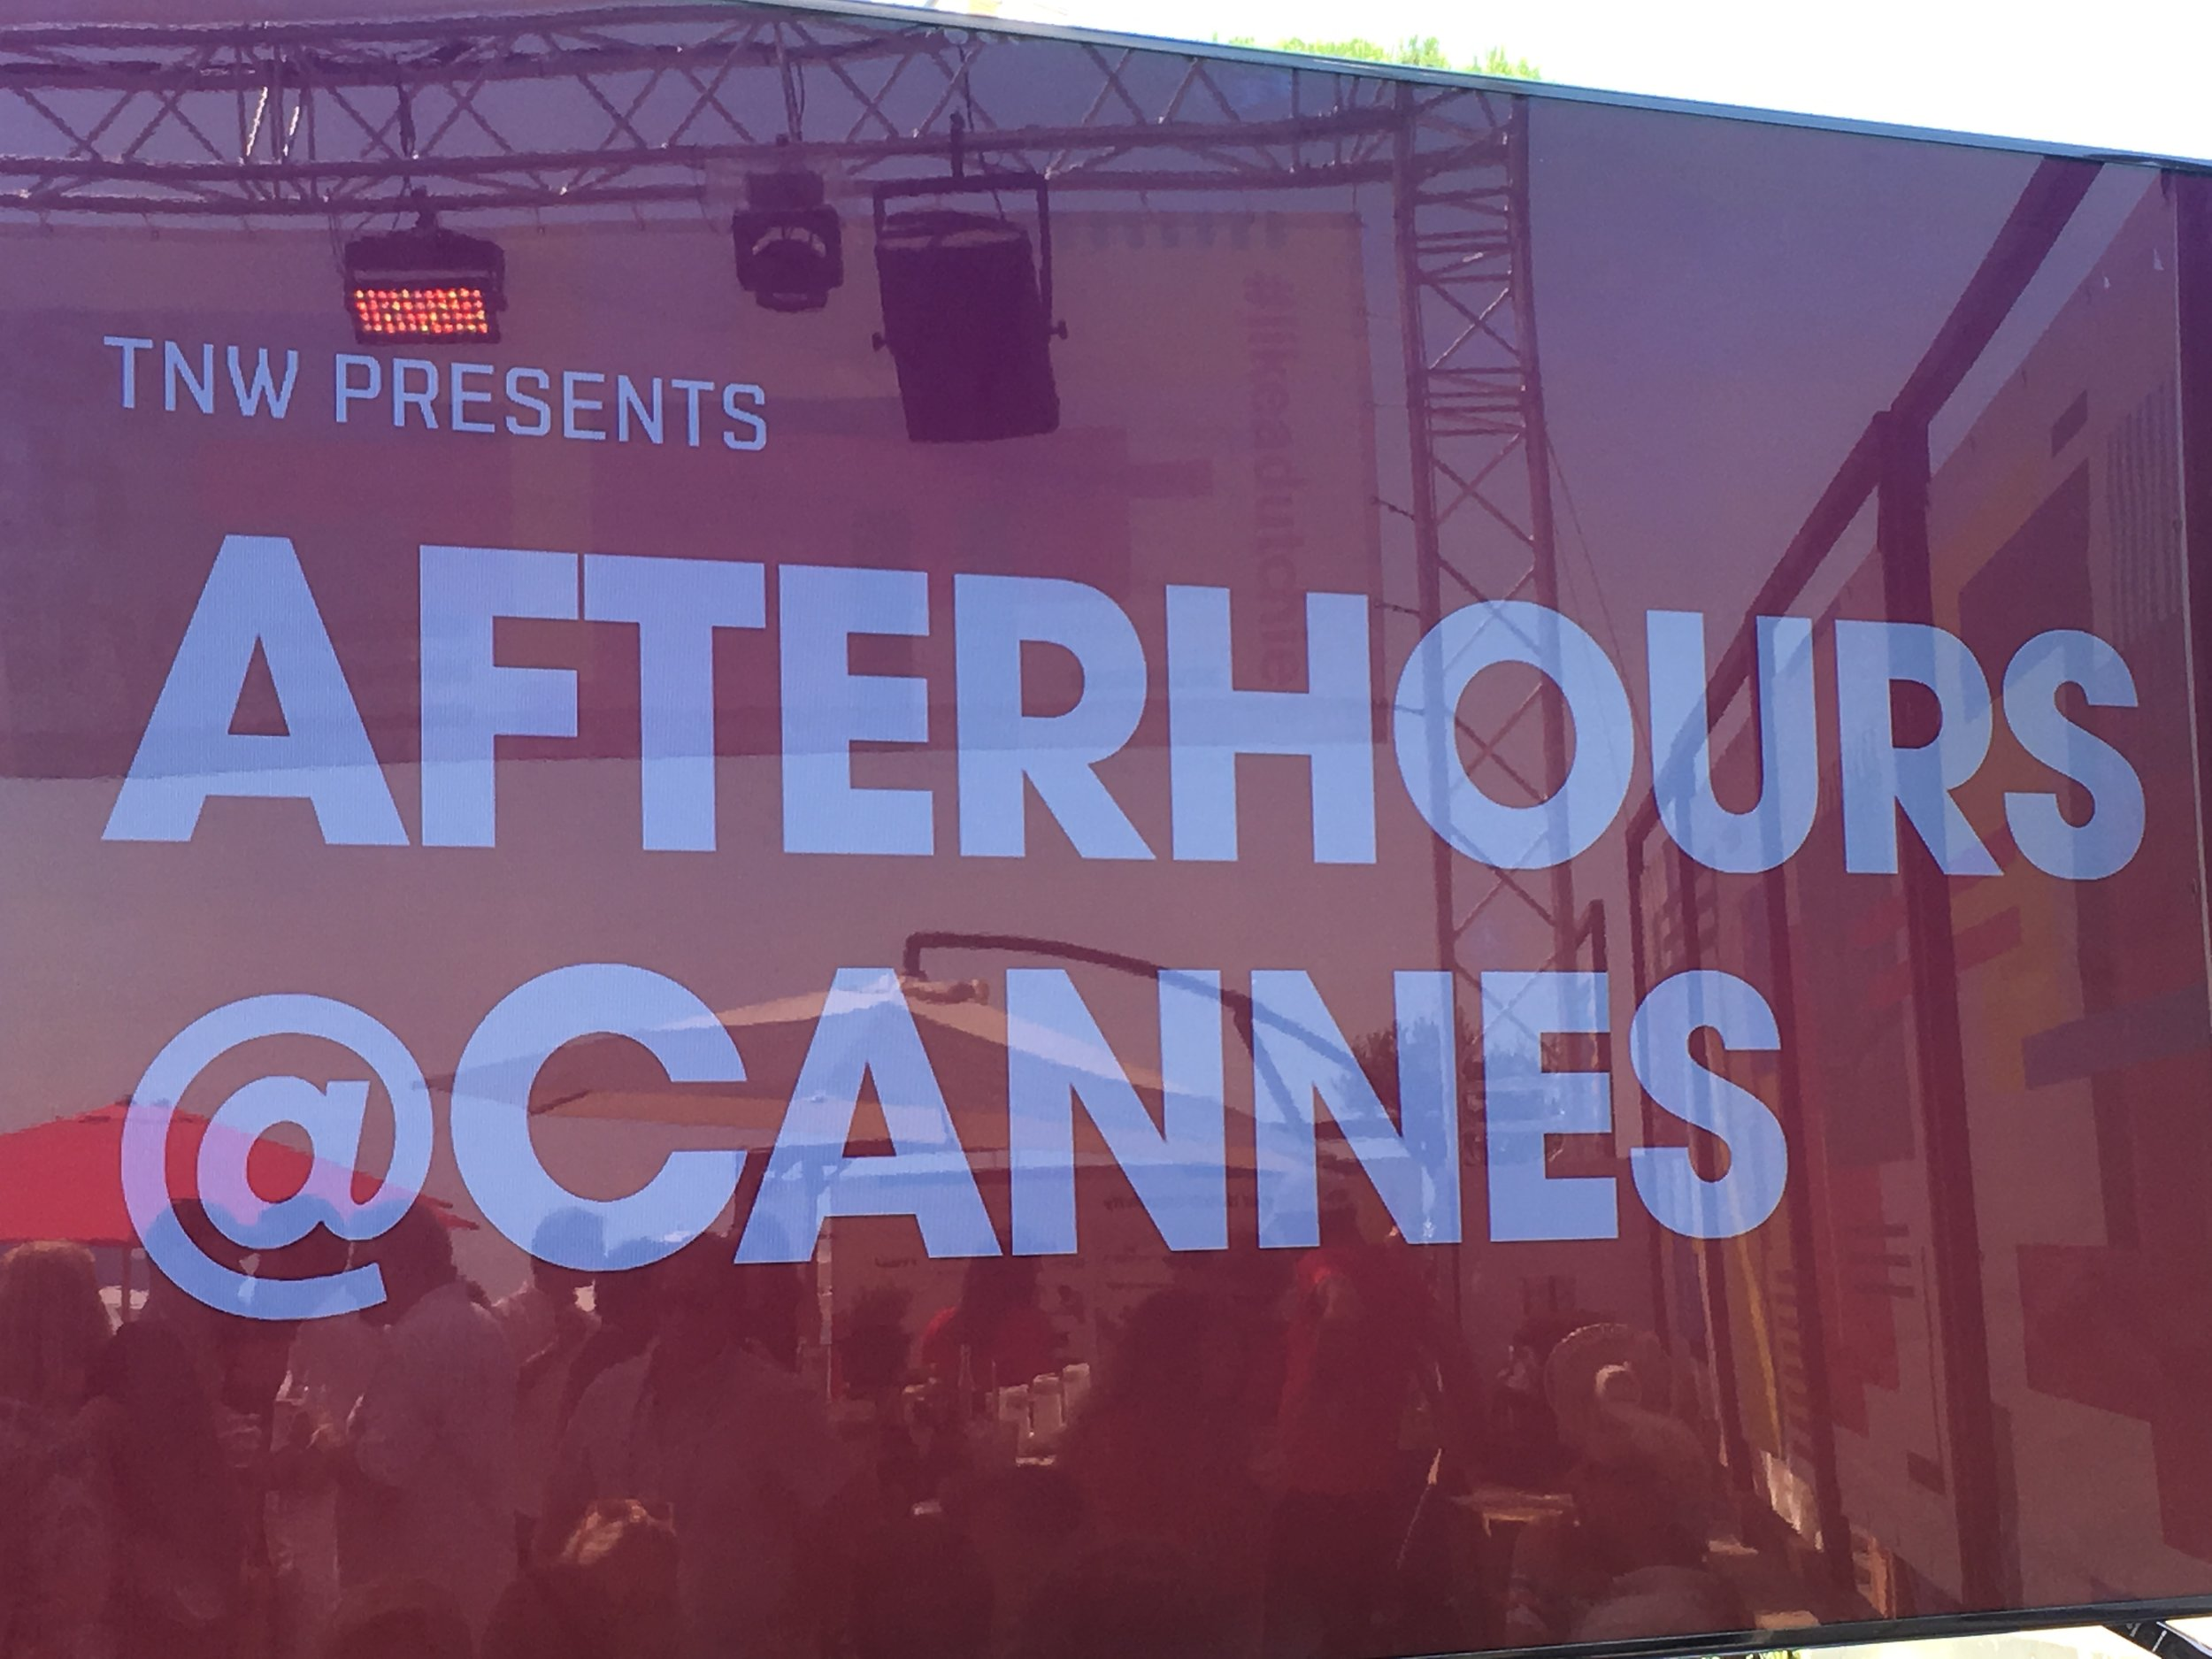 TNW Afterhours @Cannes